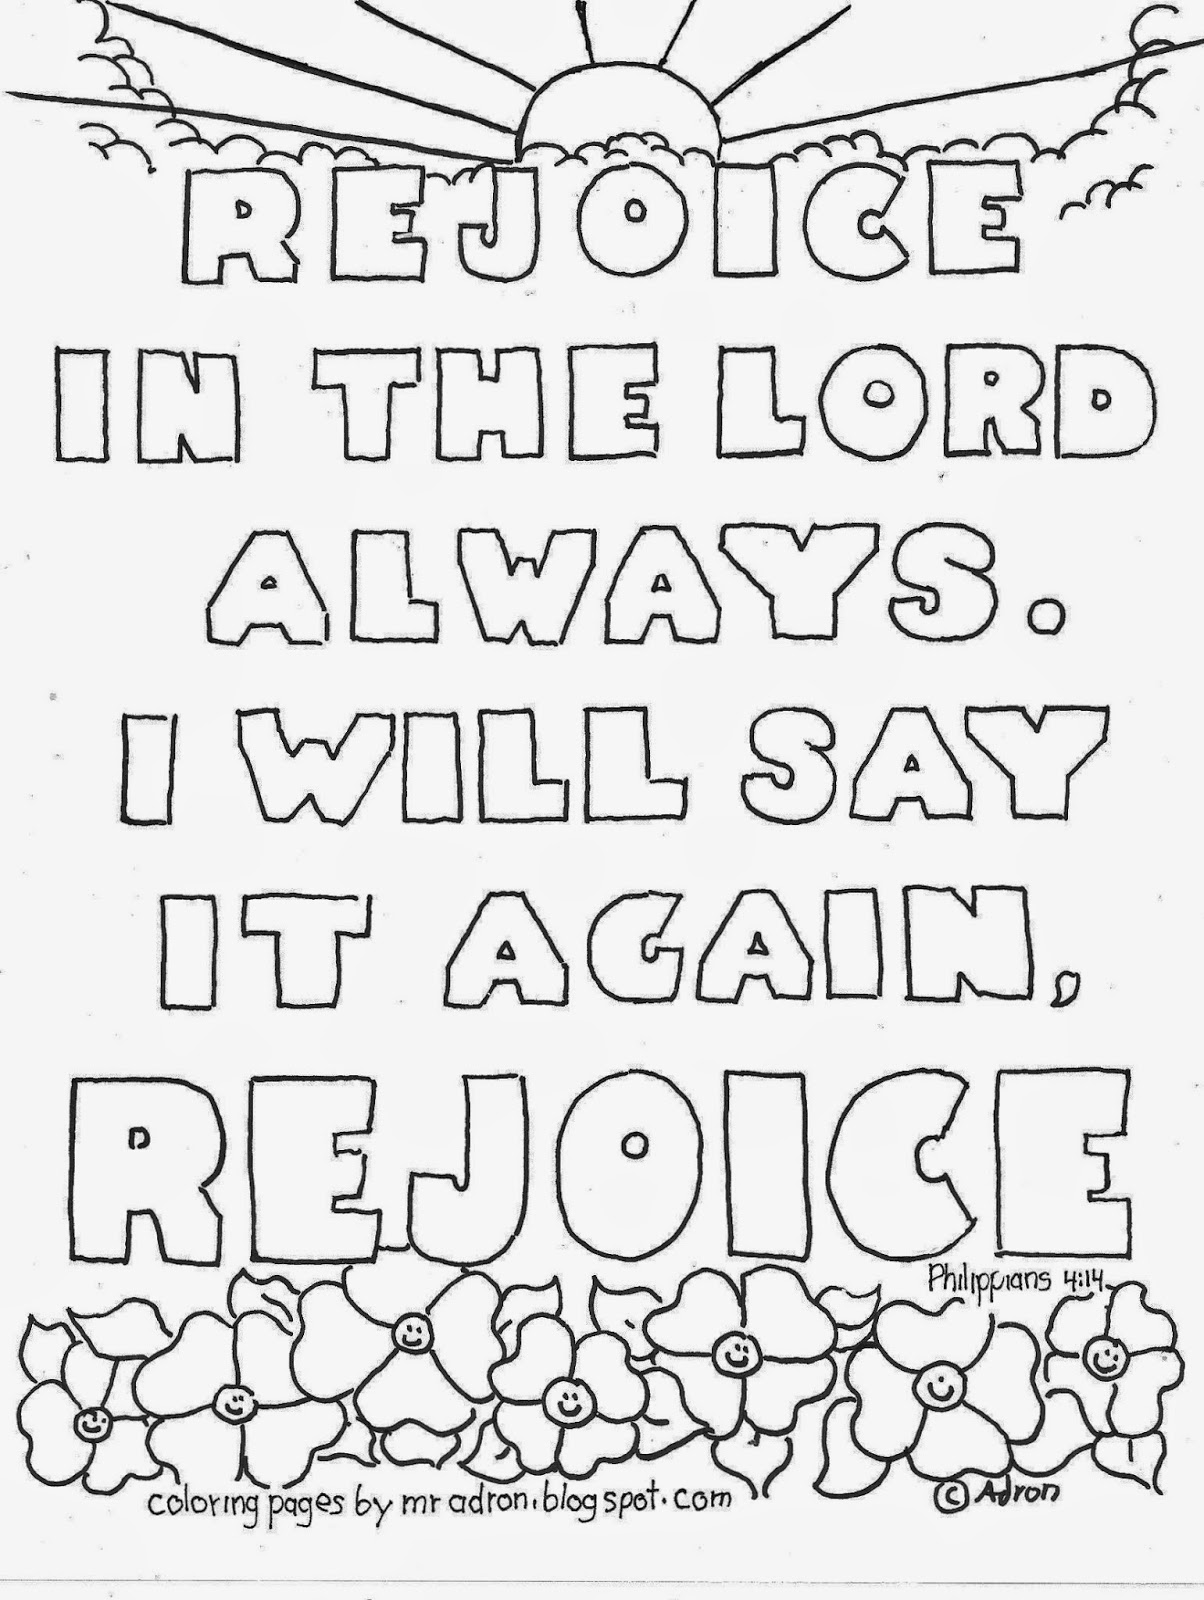 An illustration of Rejoice in the Lord that can be printed and colored.